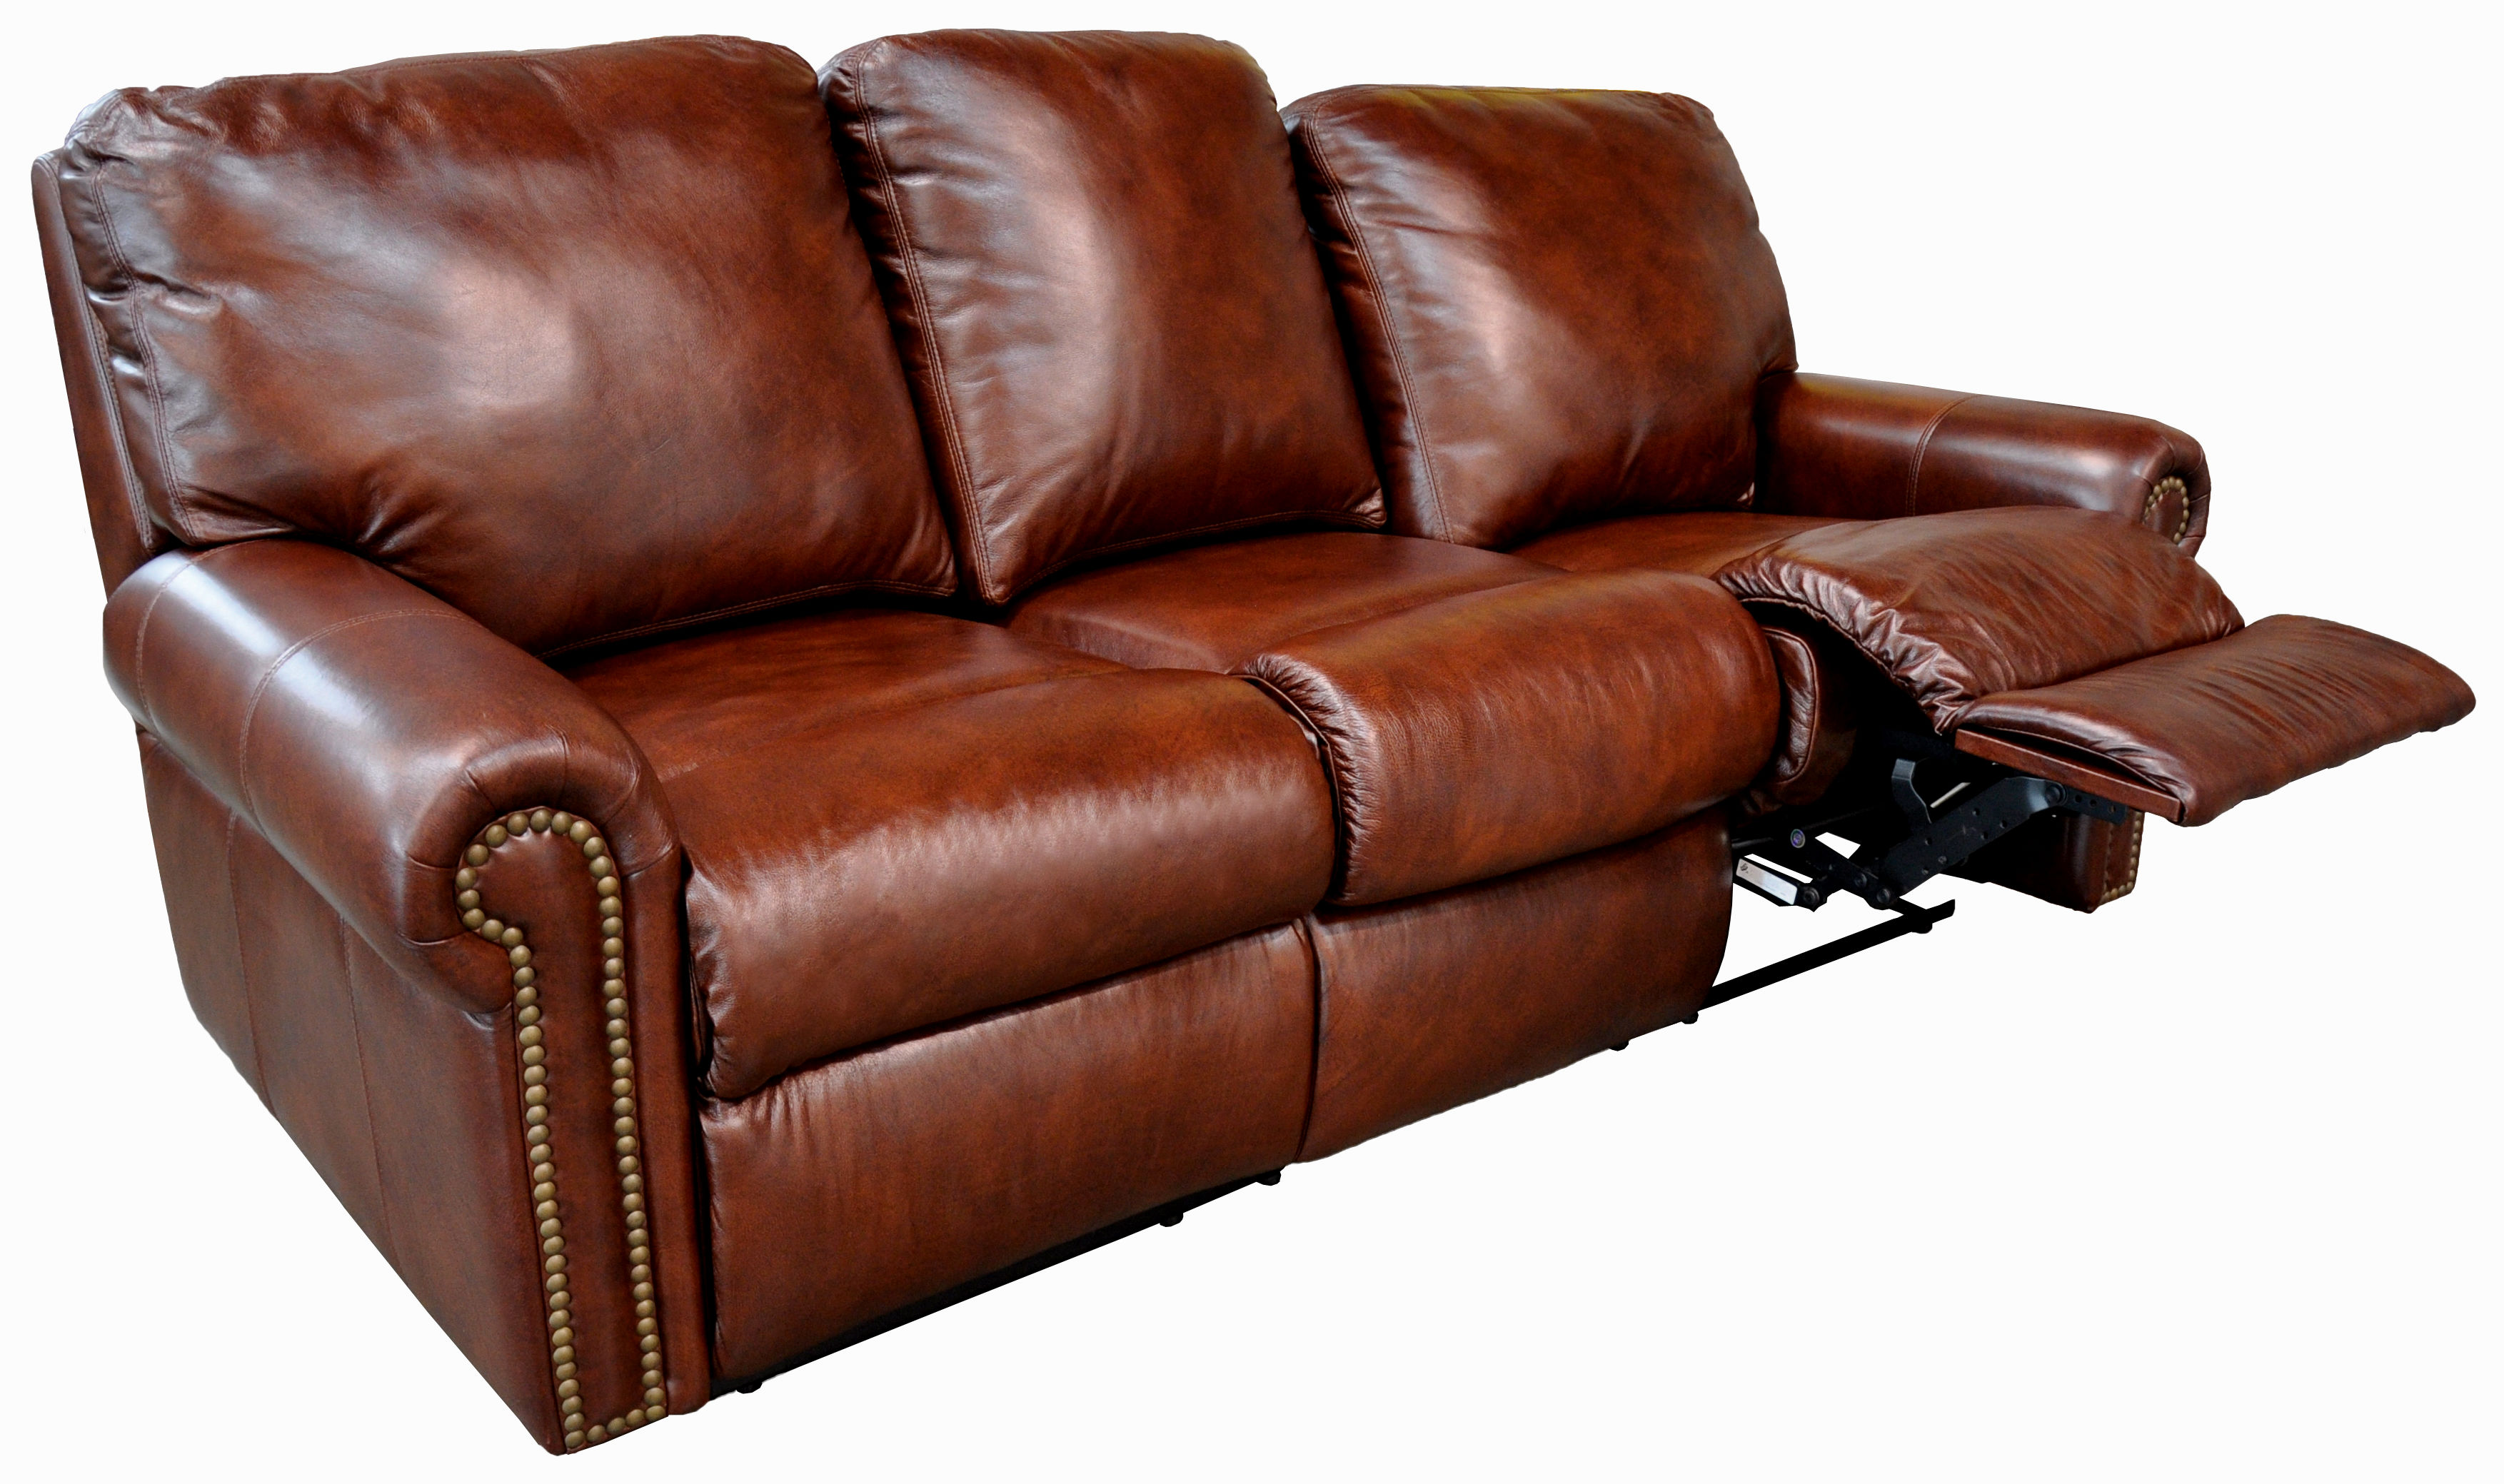 inspirational brown chesterfield sofa gallery-Excellent Brown Chesterfield sofa Gallery